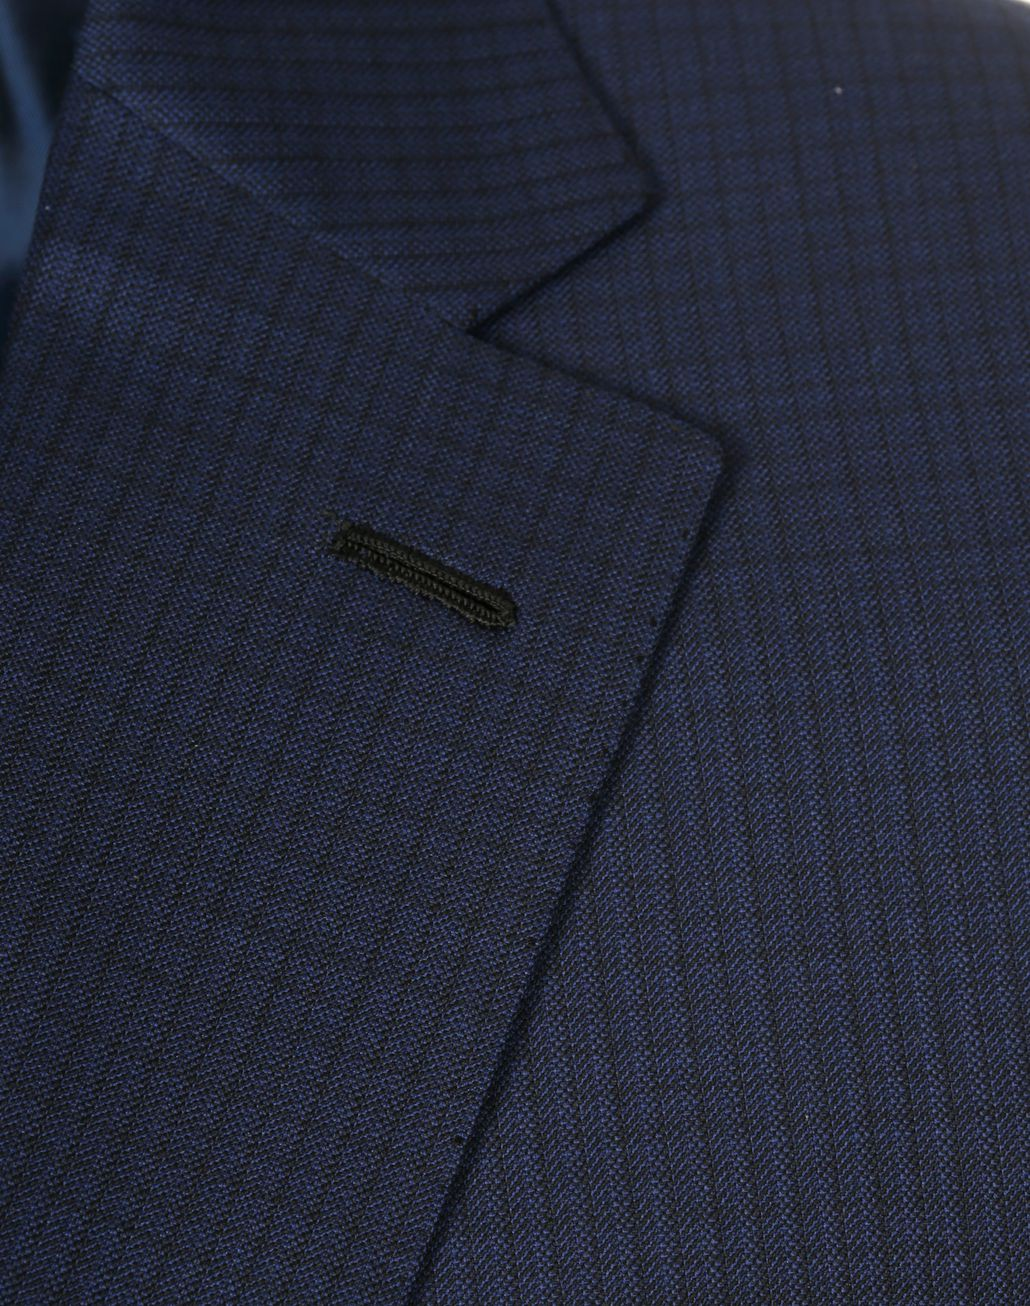 BRIONI Navy-Blue Micro-Check Herringbone Ventiquattro Brunico Suit Suits & Jackets [*** pickupInStoreShippingNotGuaranteed_info ***] a